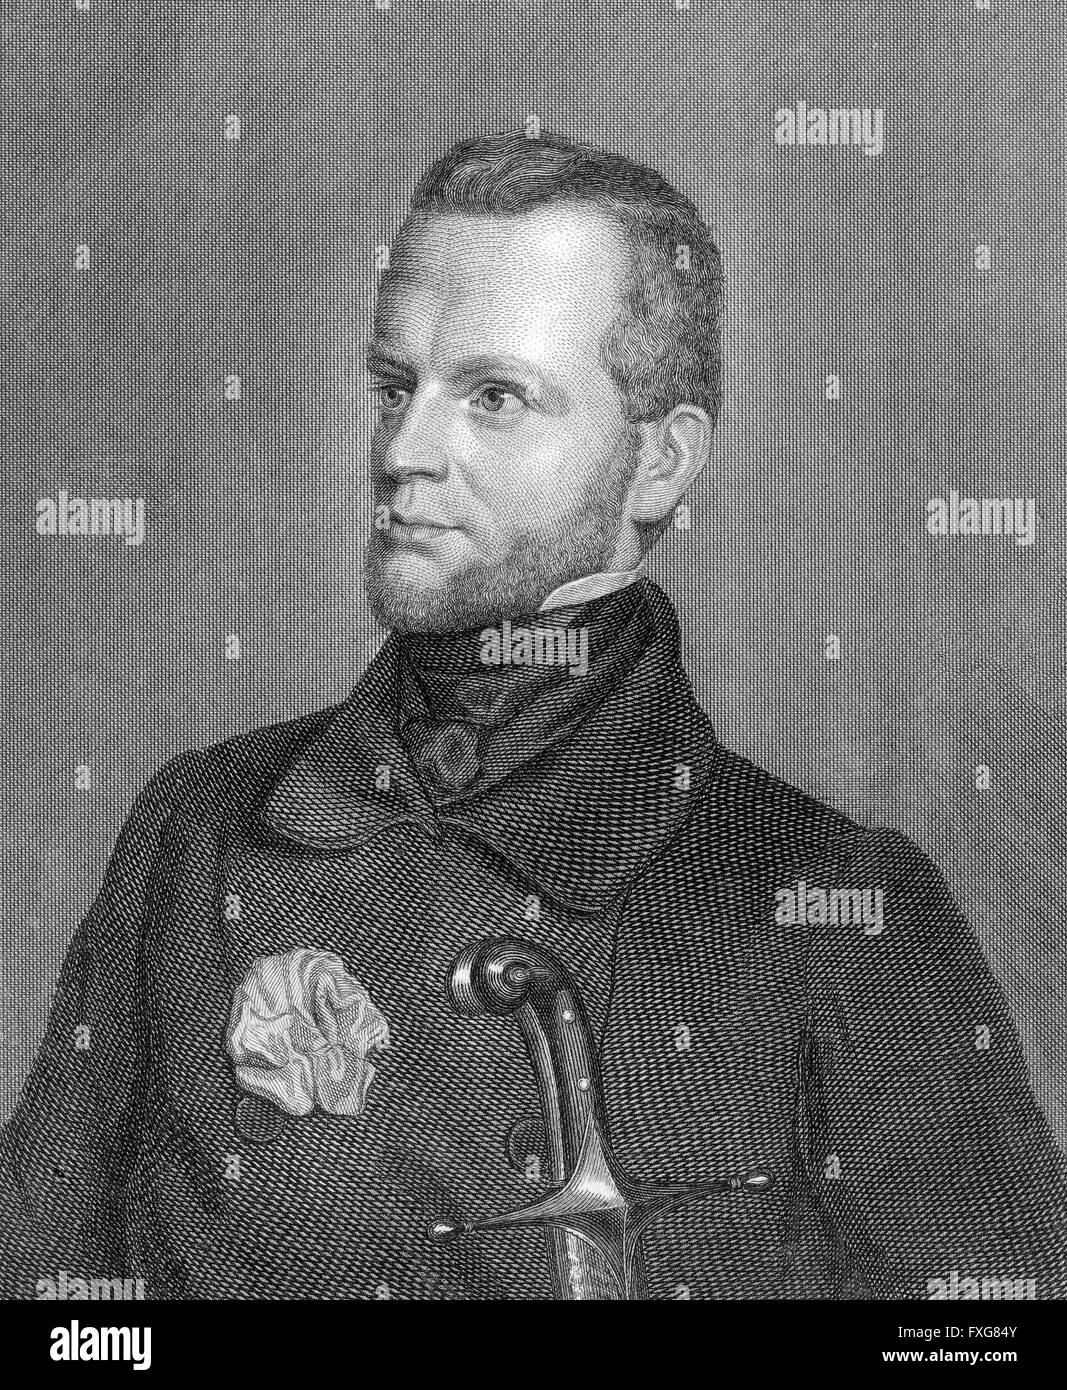 Carl Giskra, 1820-1879, a statesman of the Austrian Empire - Stock Image